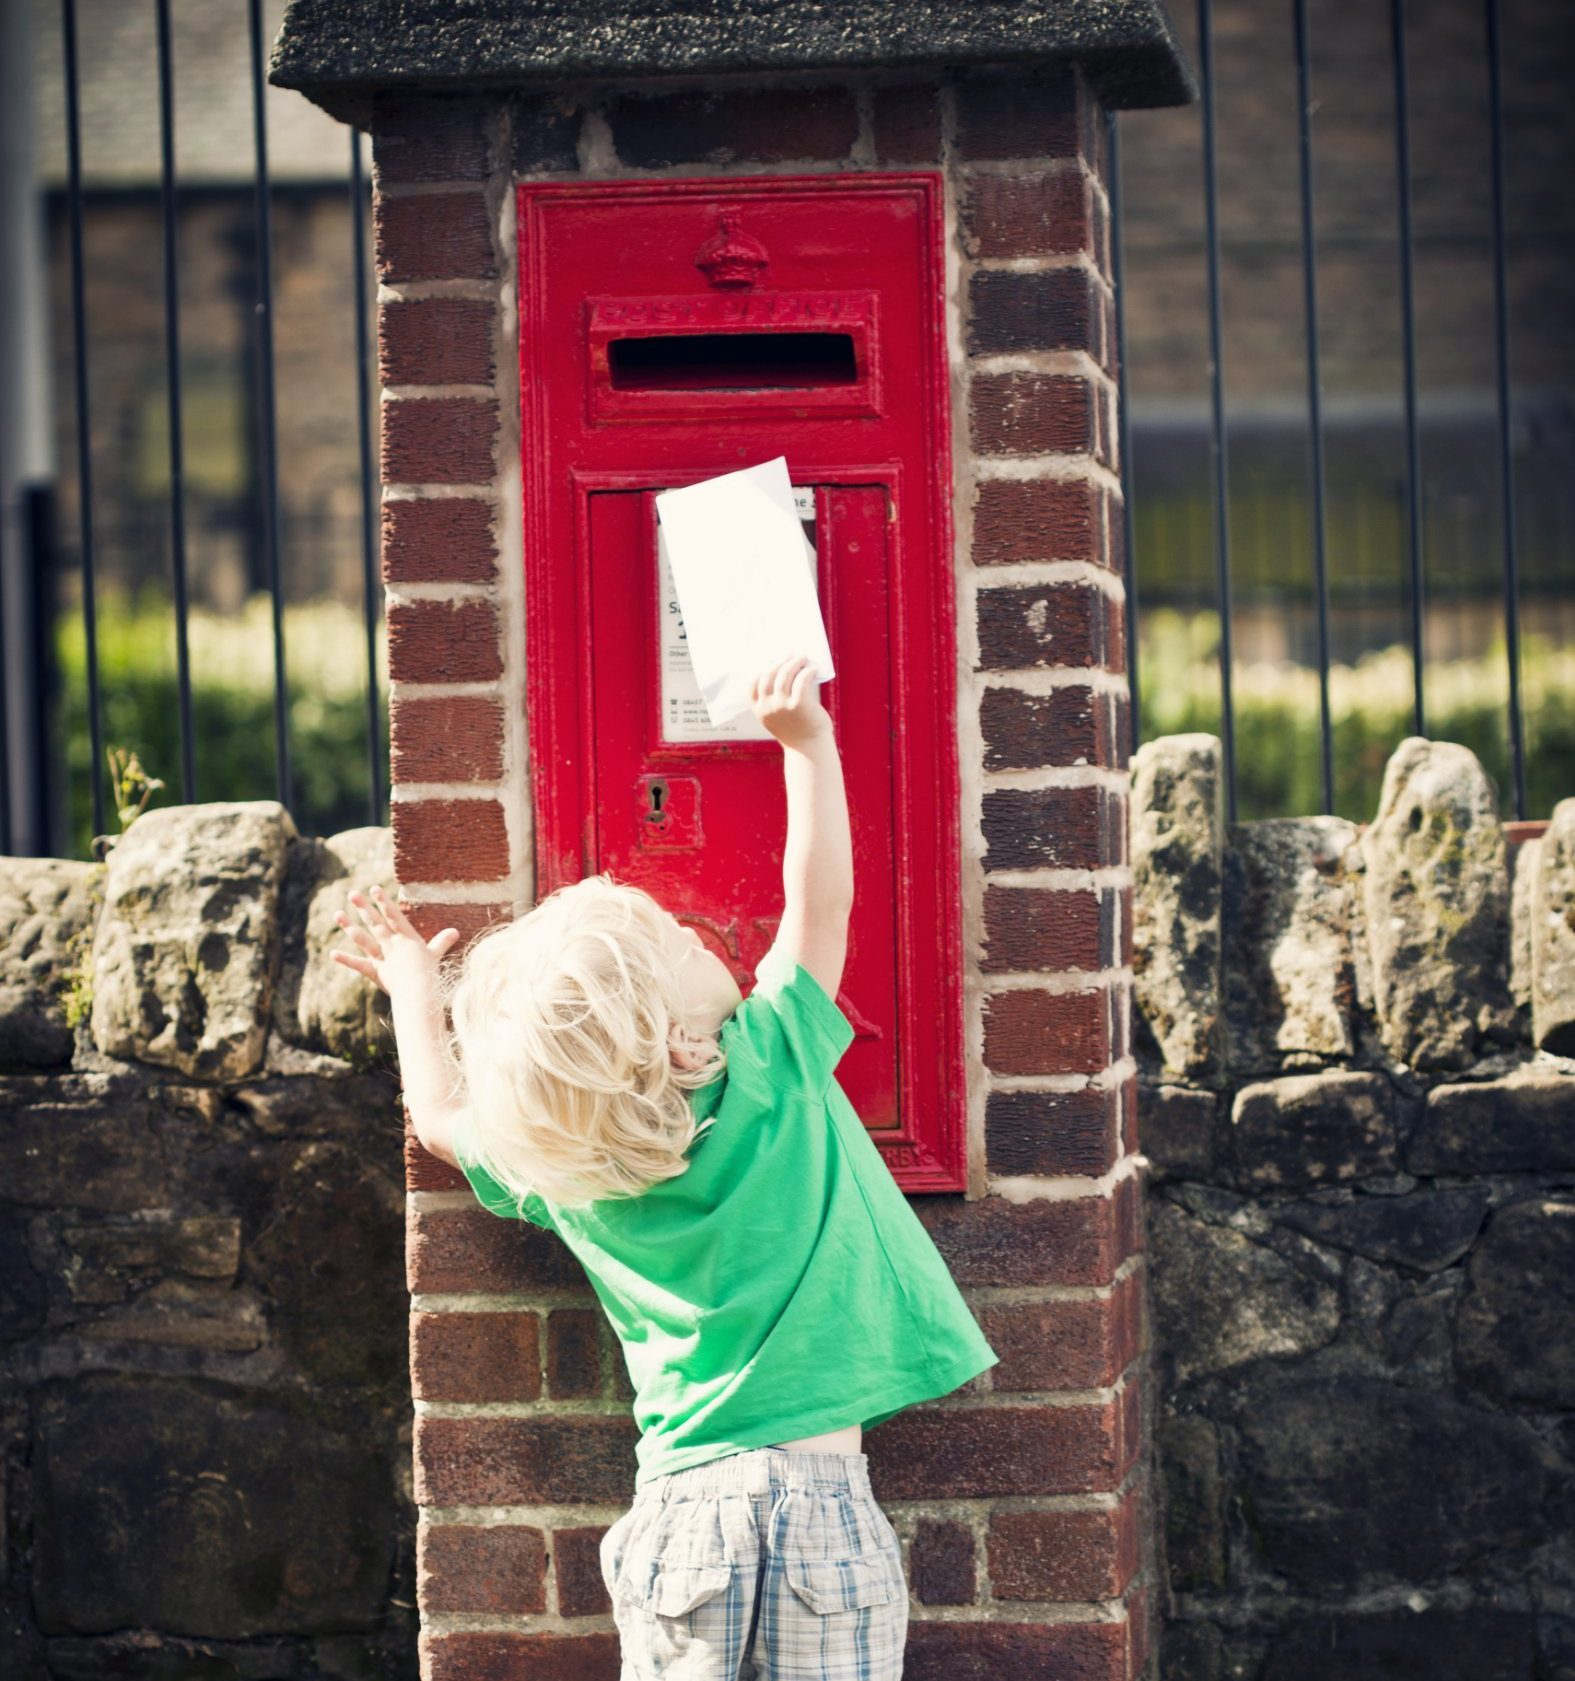 Little boy (3yrs) reaching up to post letter into post box.